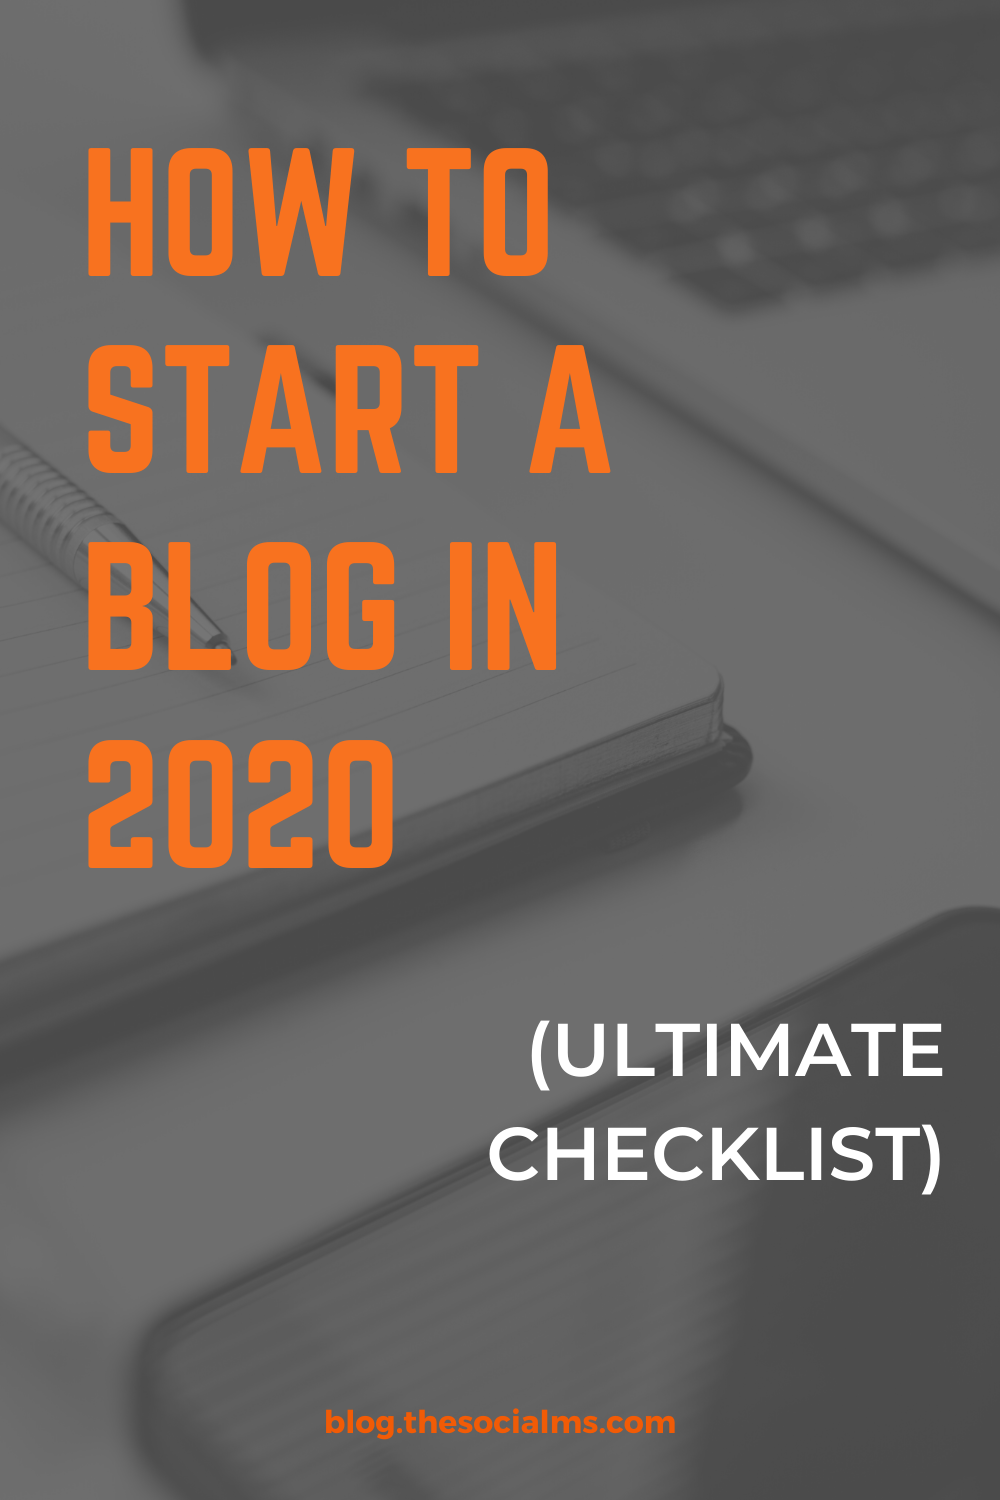 you're interested in starting a blog, this post will give you a guide to starting a blog in 2020 and beyond. #startablog #bloggingforbeginners #blogging101 #bloggingtips #entrepreneurship #startblogging